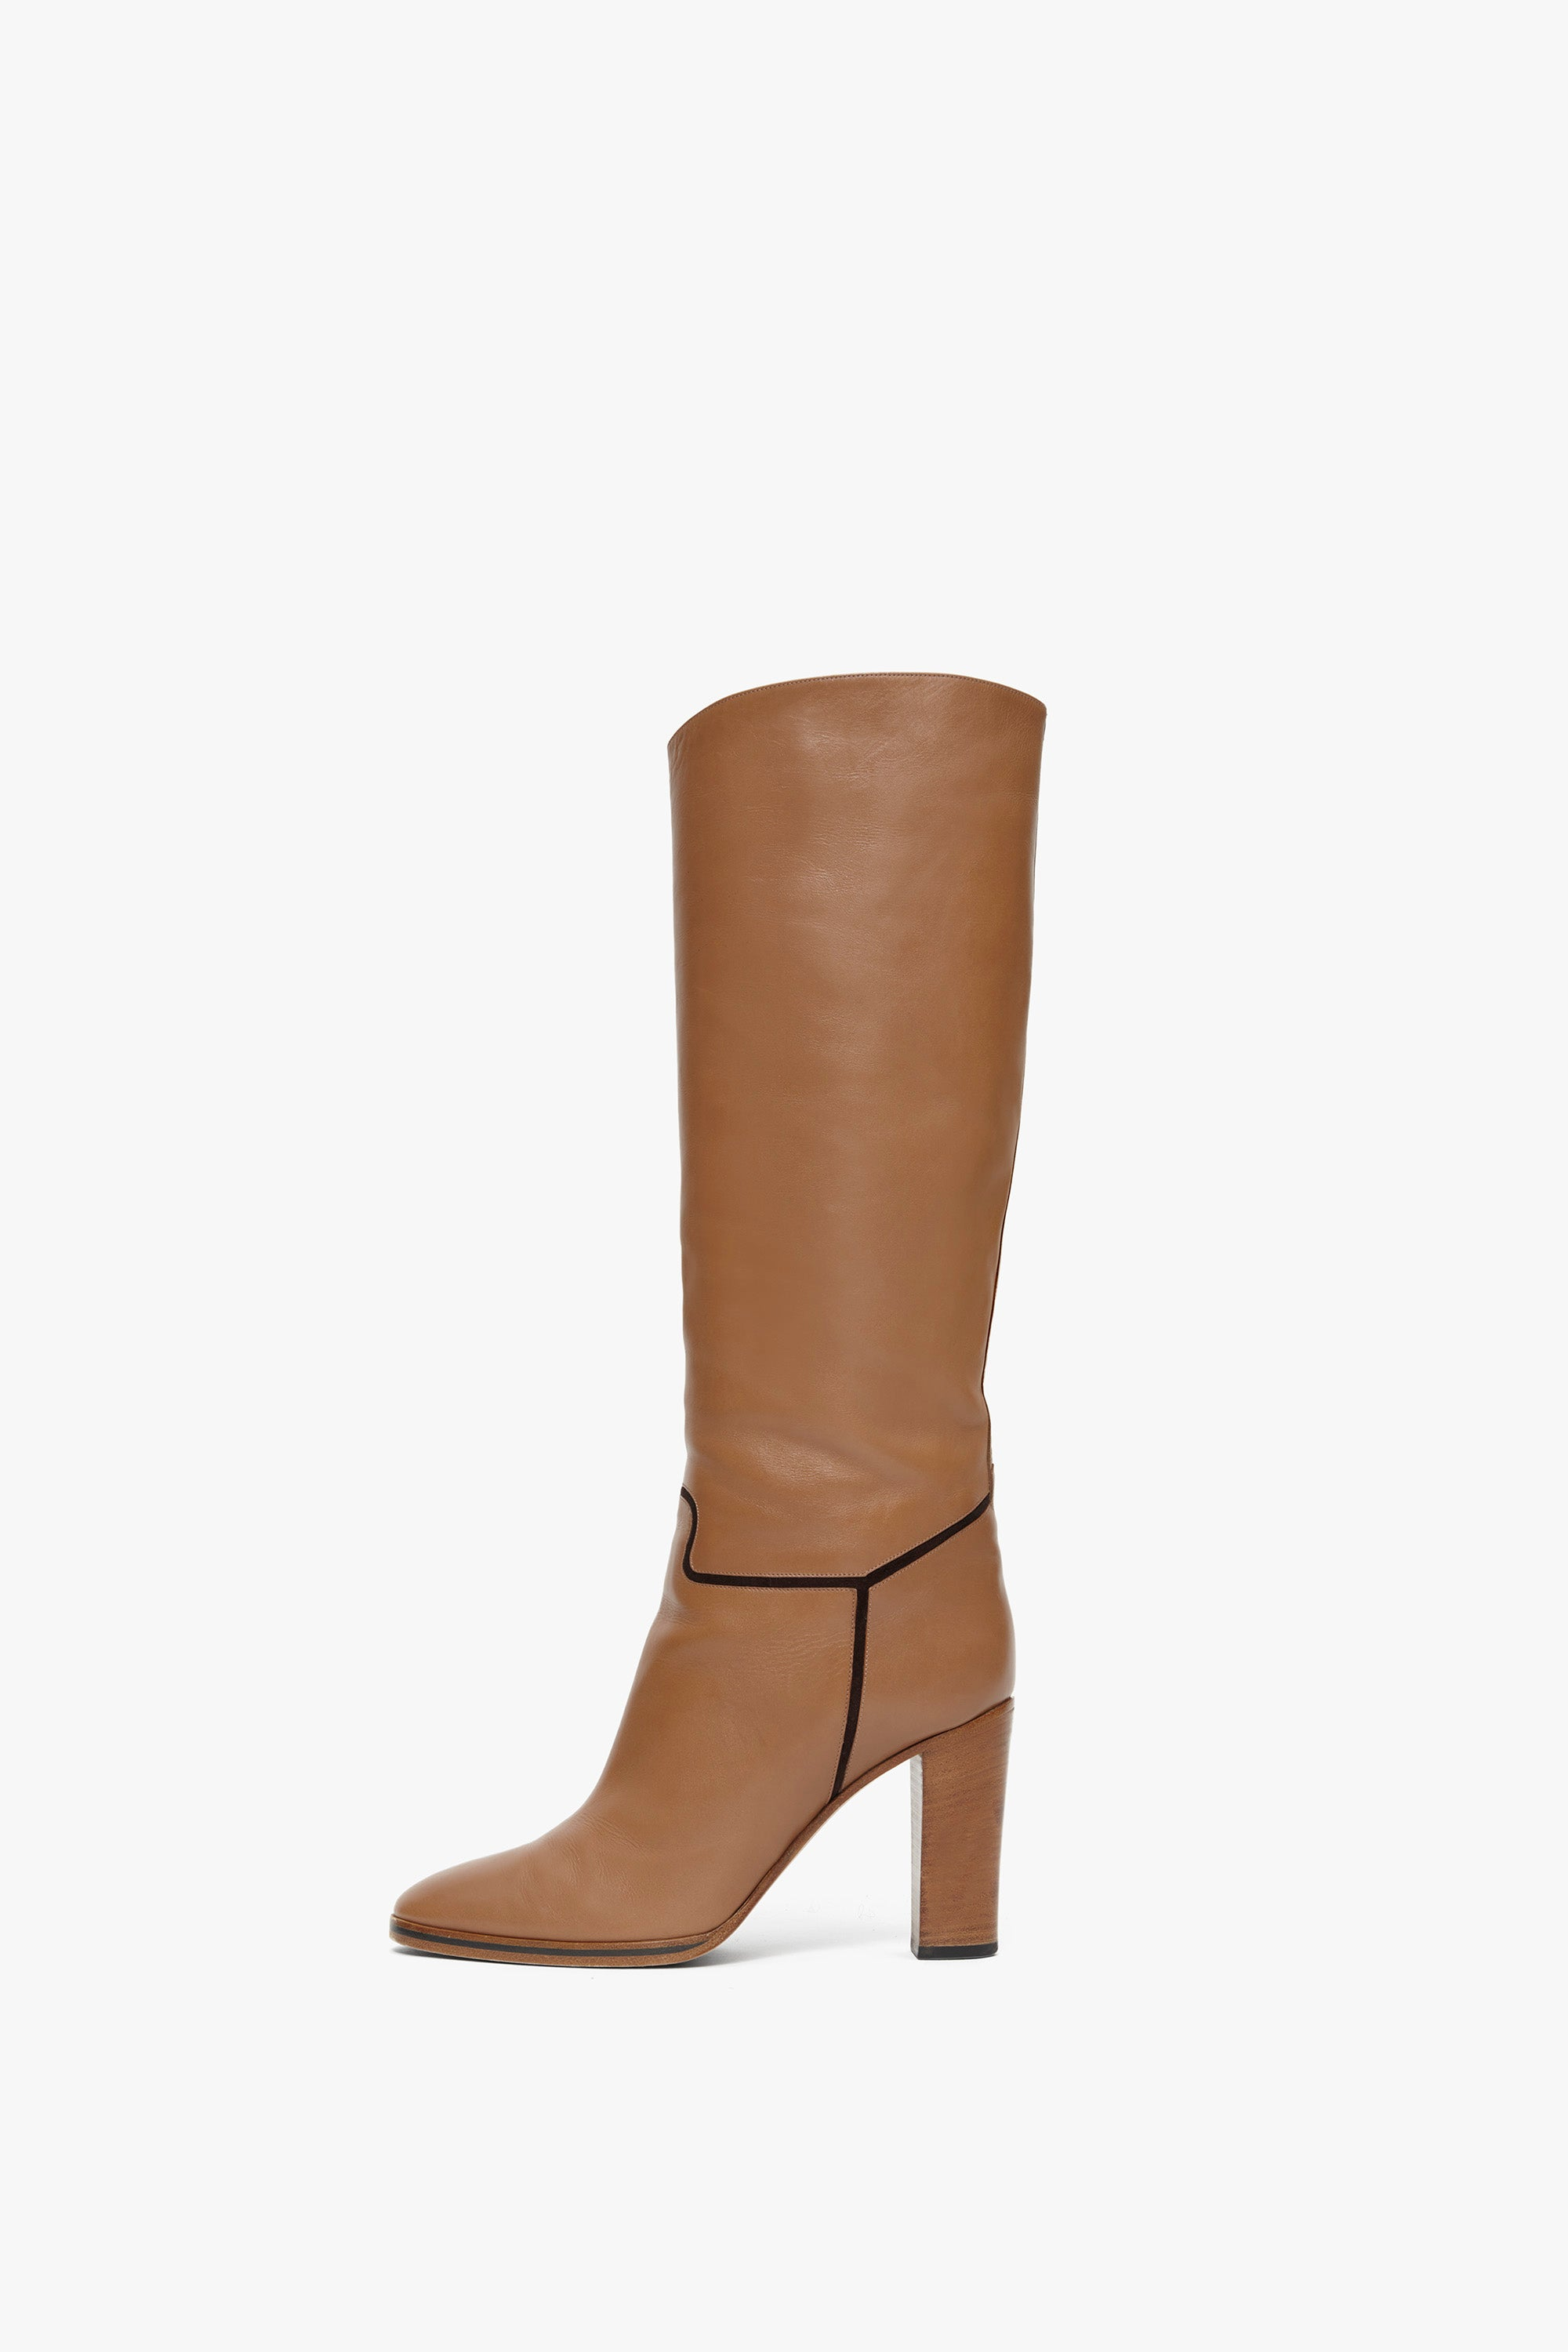 Valentina Knee-high Leather 95mm Boot in Biscuit Beige